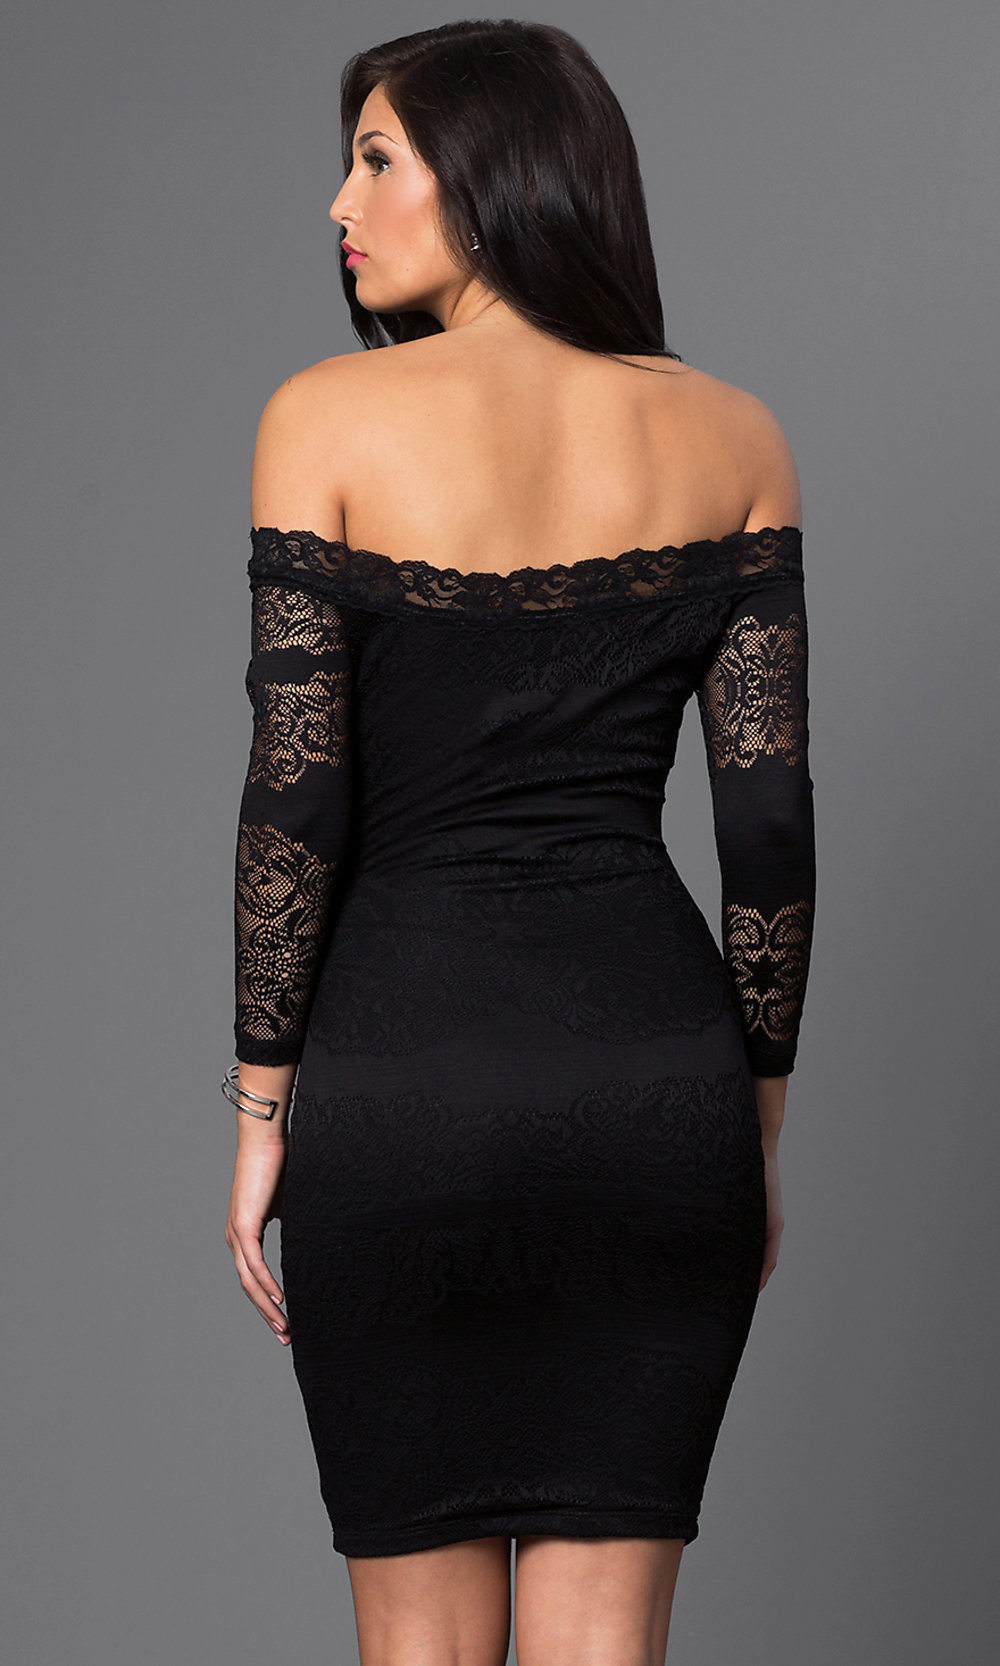 Black dress quarter sleeve - Hover To Zoom